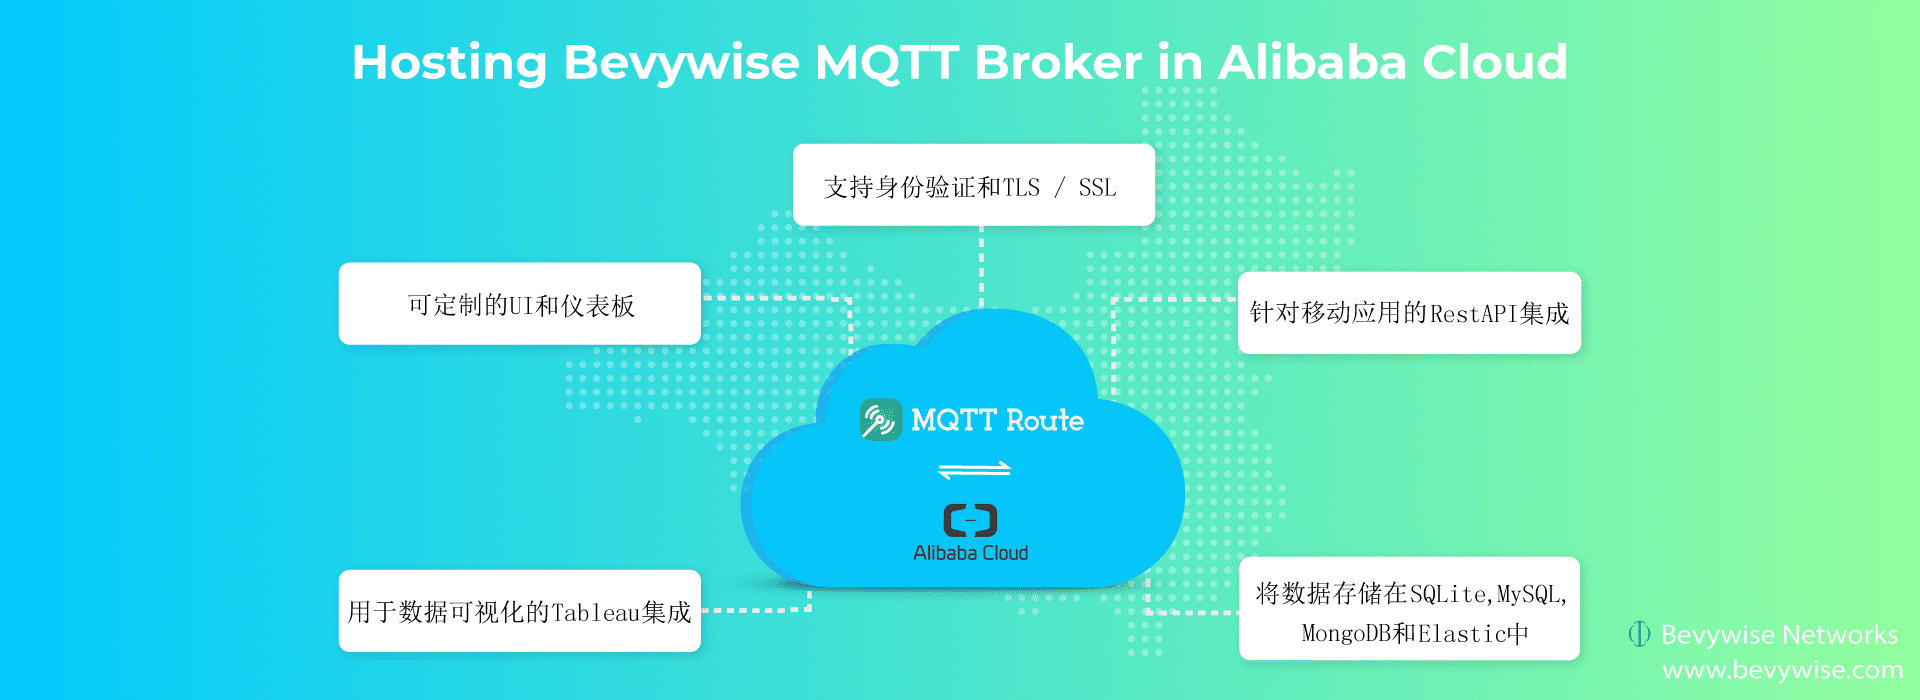 MQTT Broker in Alibaba Cloud - secure hosting - Bevywise Networks